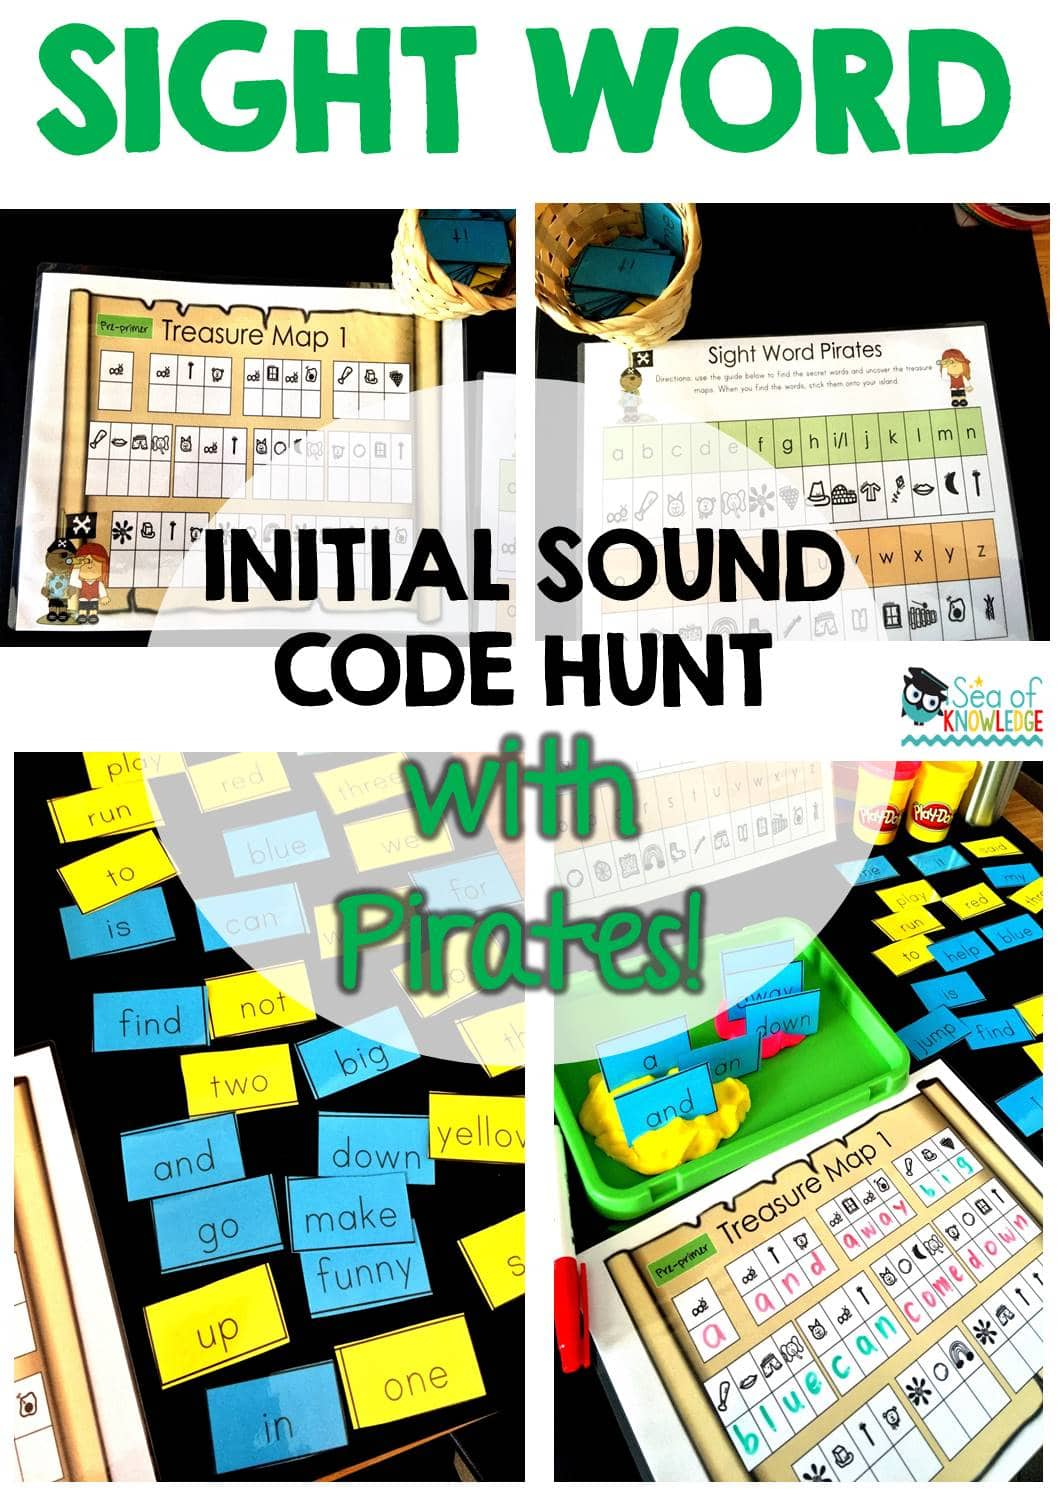 Sight Word Activity Pirate Secret Code Hunt! The Ultimate Game!